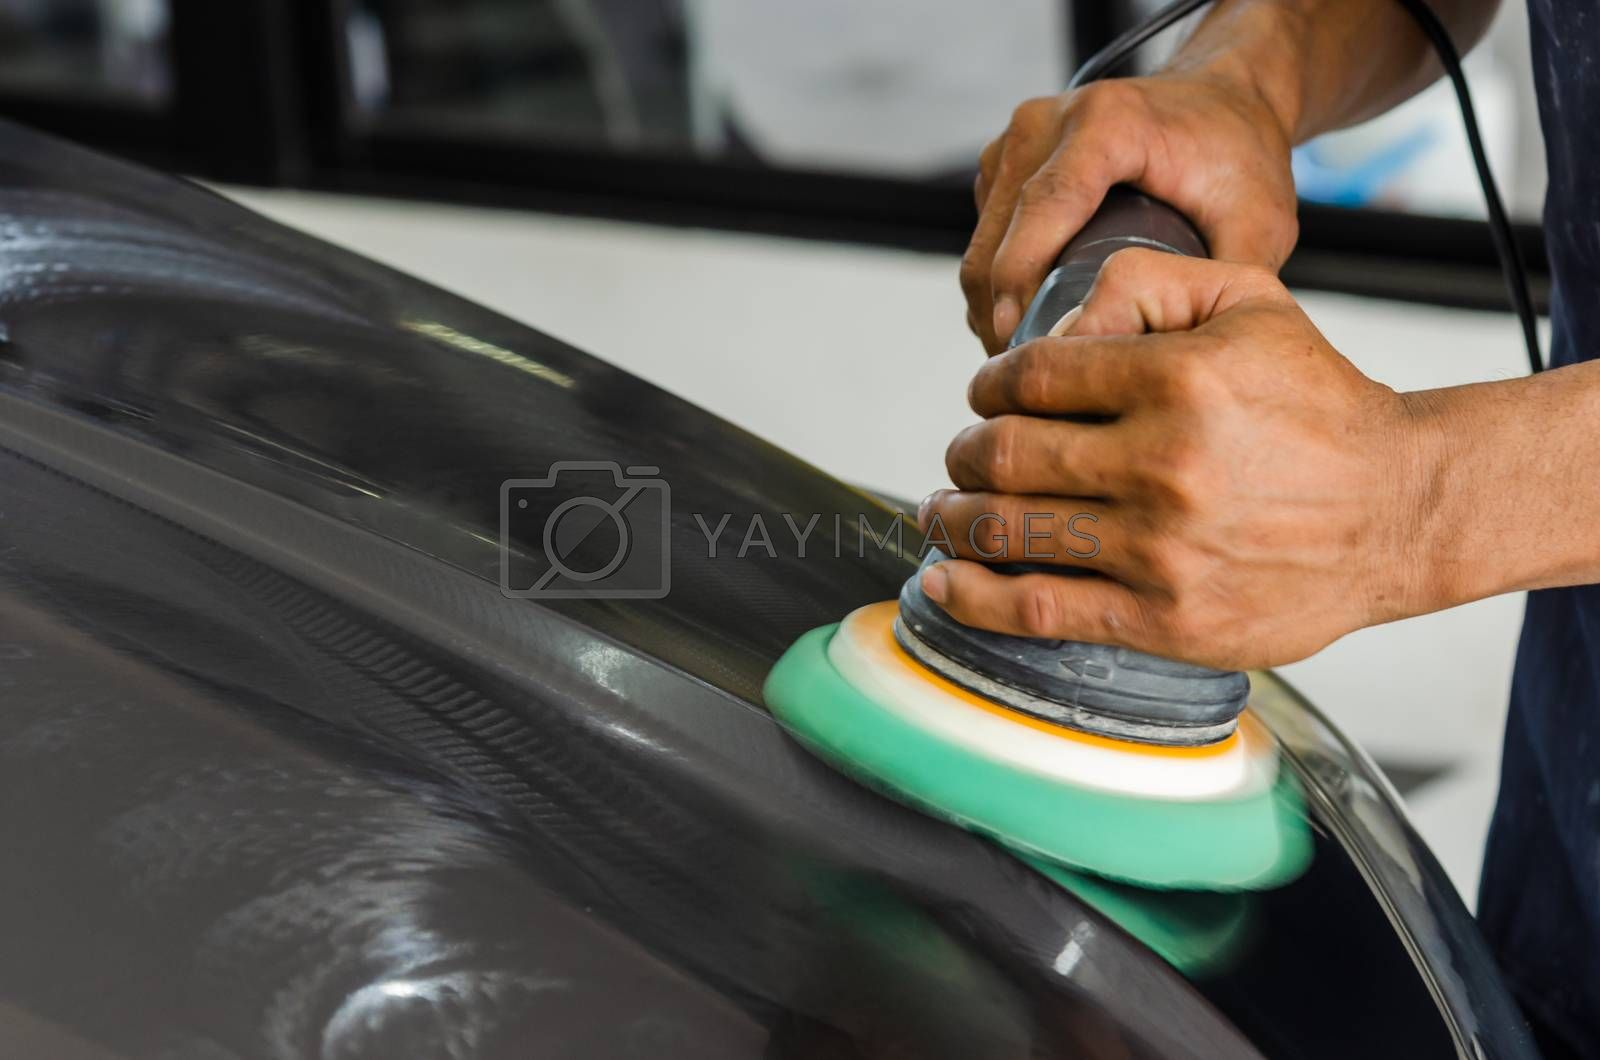 Man hands holding the work tool polish the car.Buffing and polishing car. Car detailing.